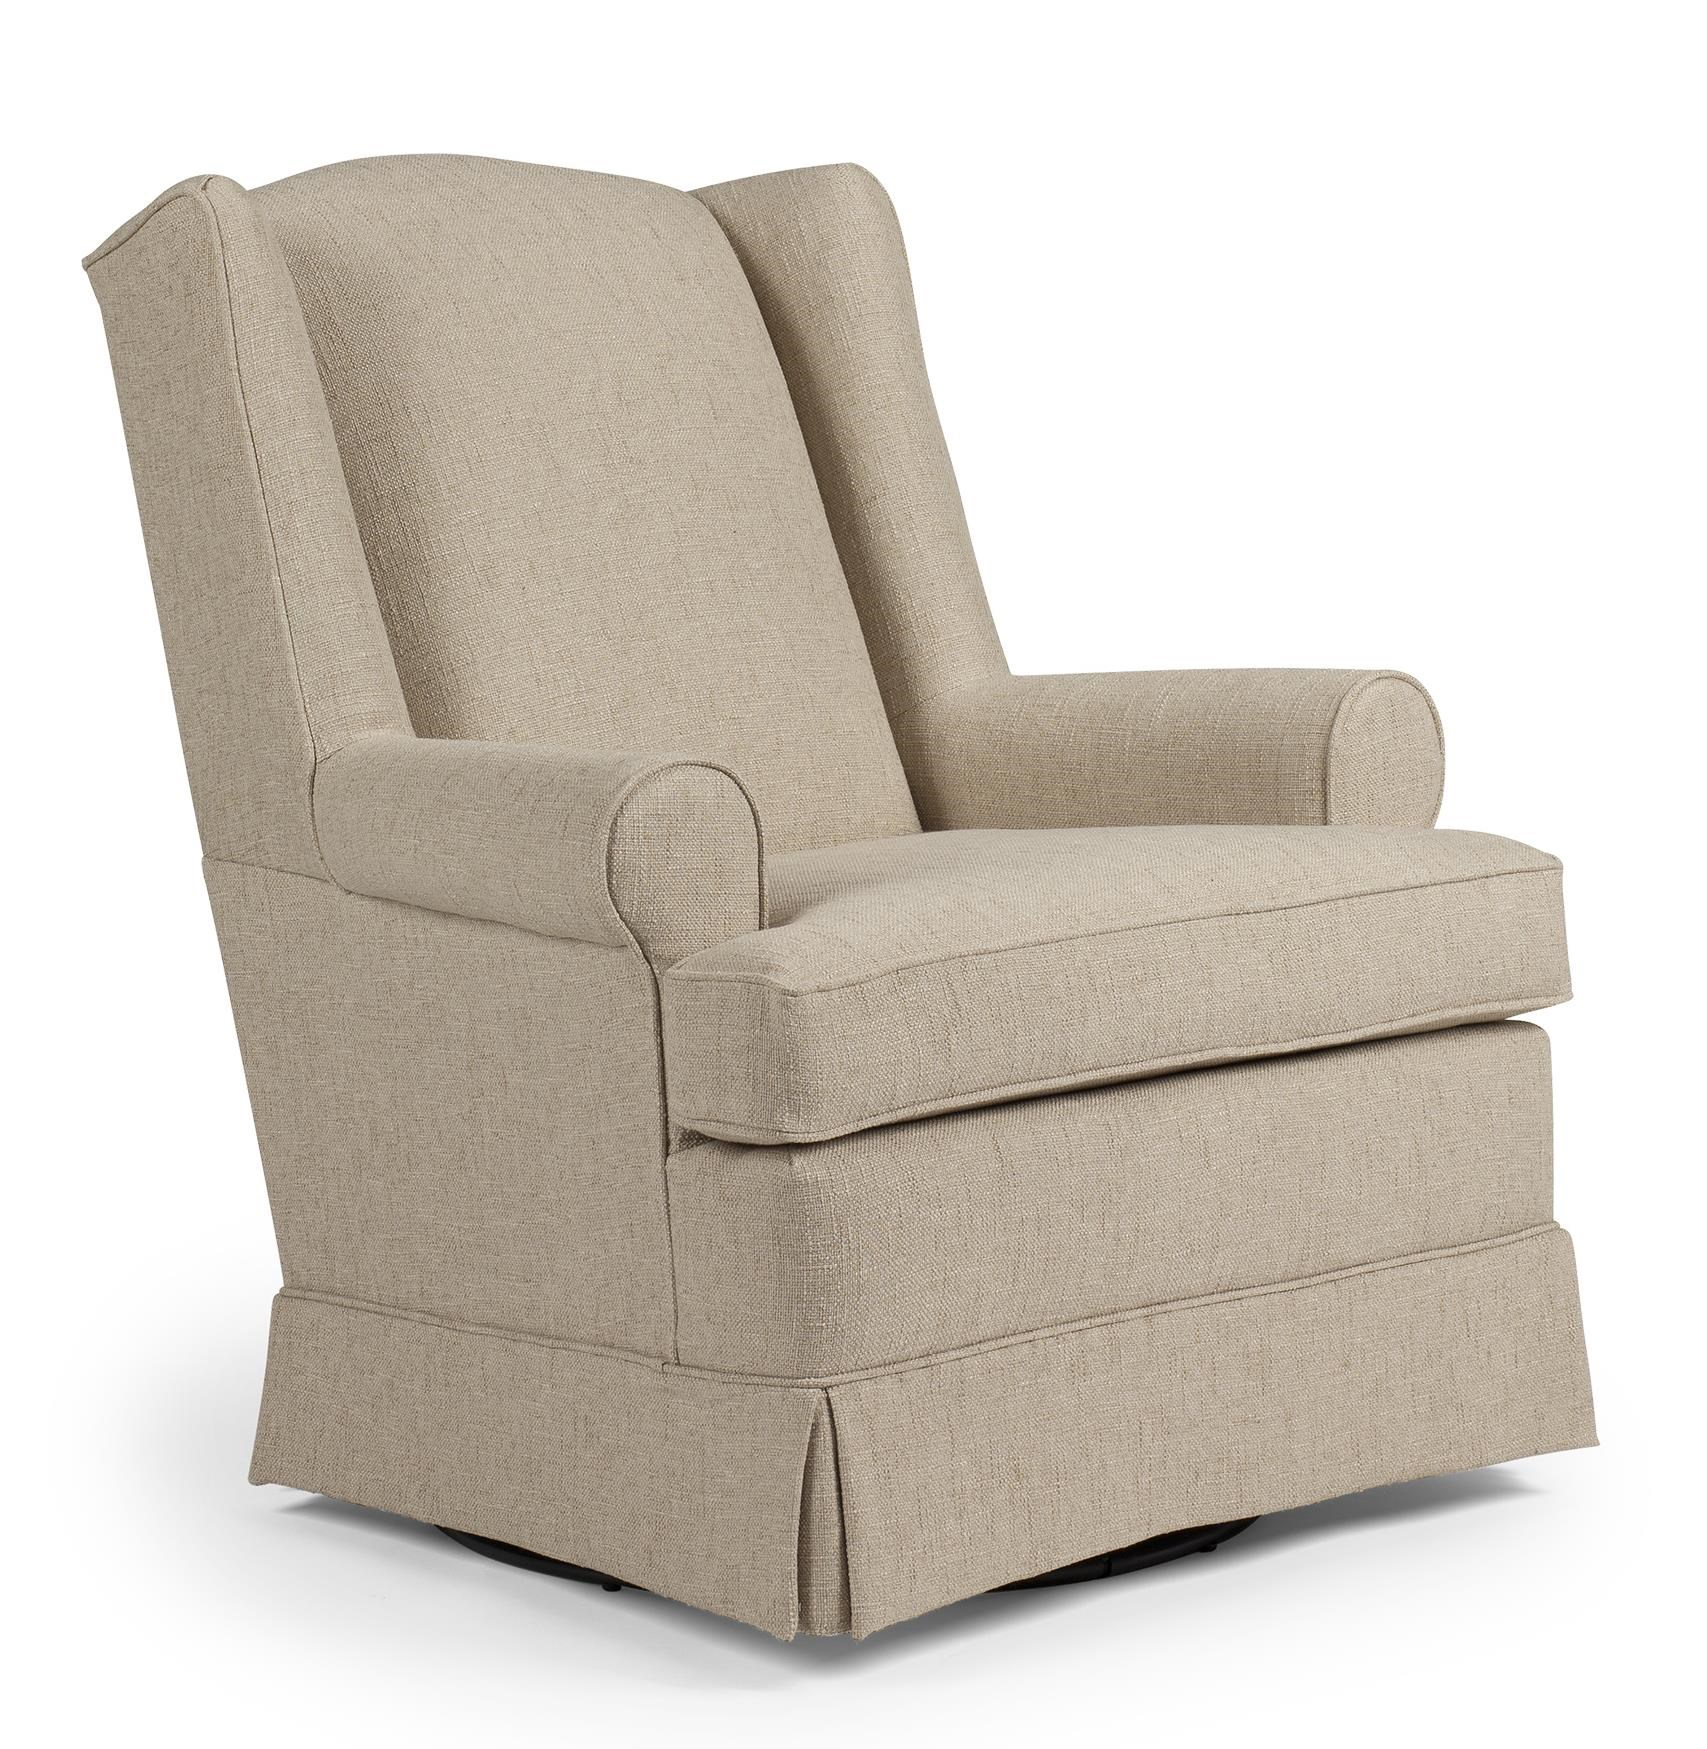 Superbe Best Chairs Storytime Series Storytime Swivel Chairs And Ottomans Roni  Skirted Swivel Glider Chair